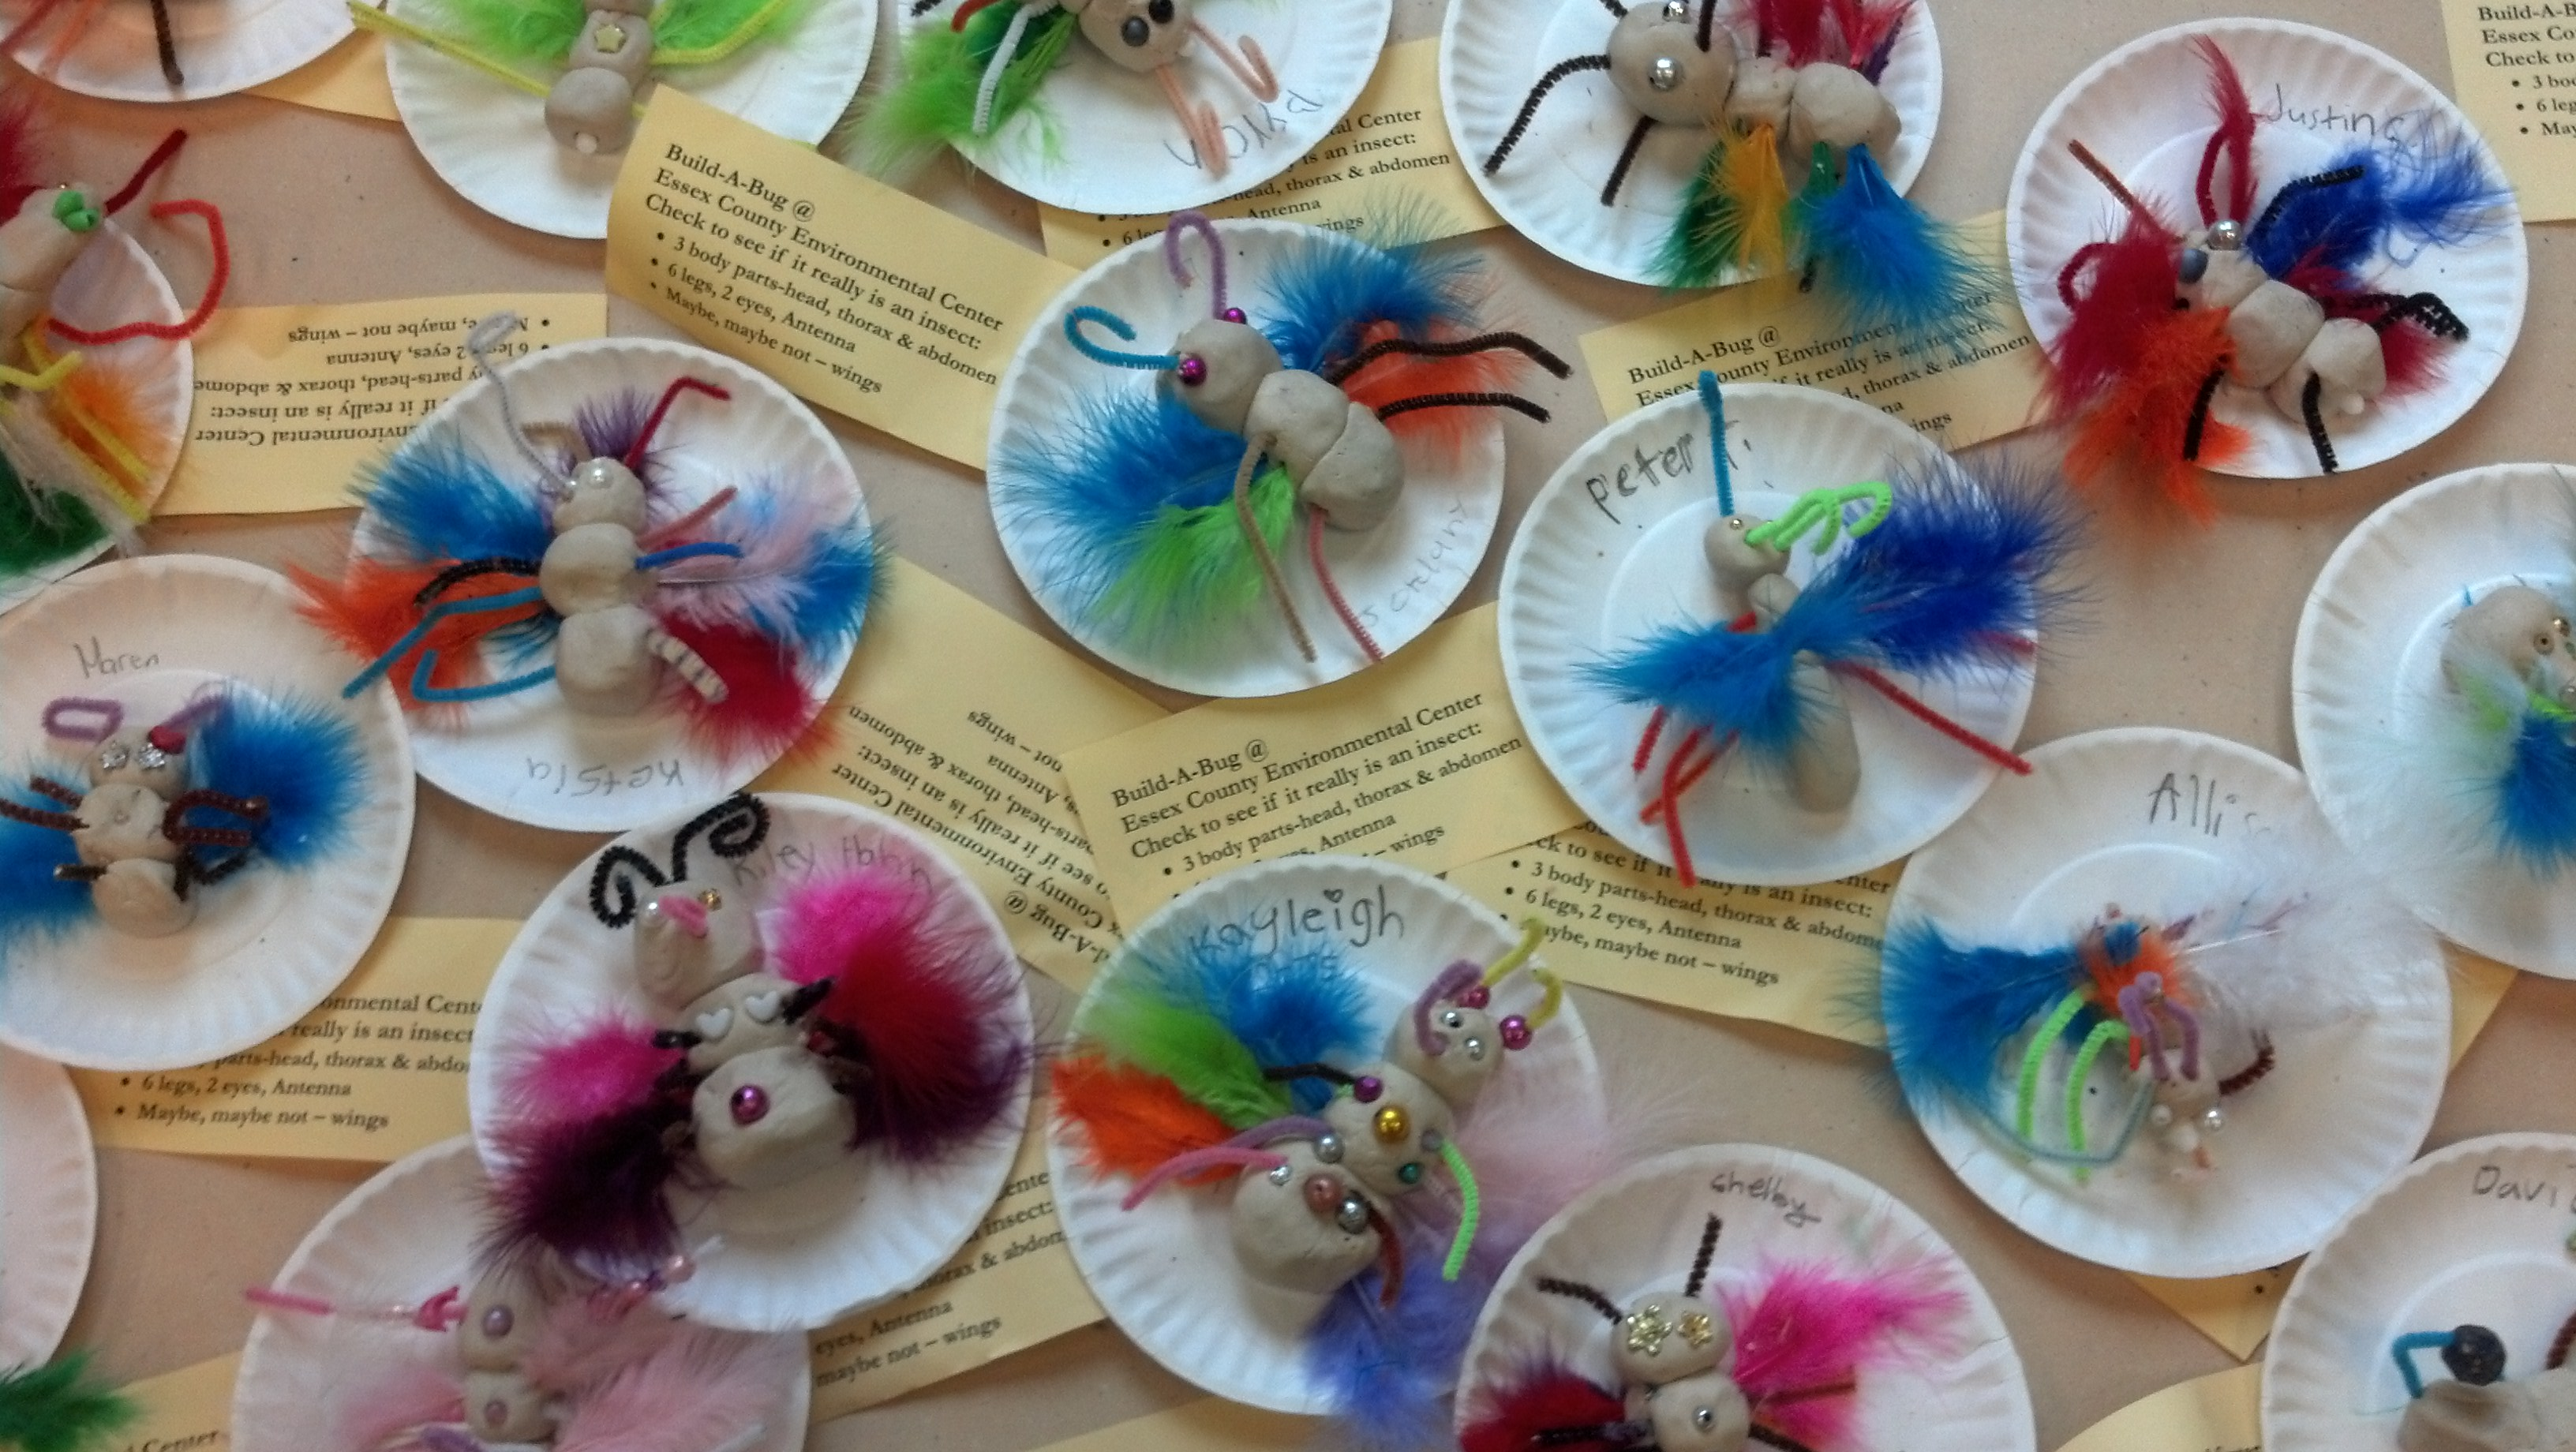 Buzz Into Action with the Build-A-Bug Activity – Nature Into